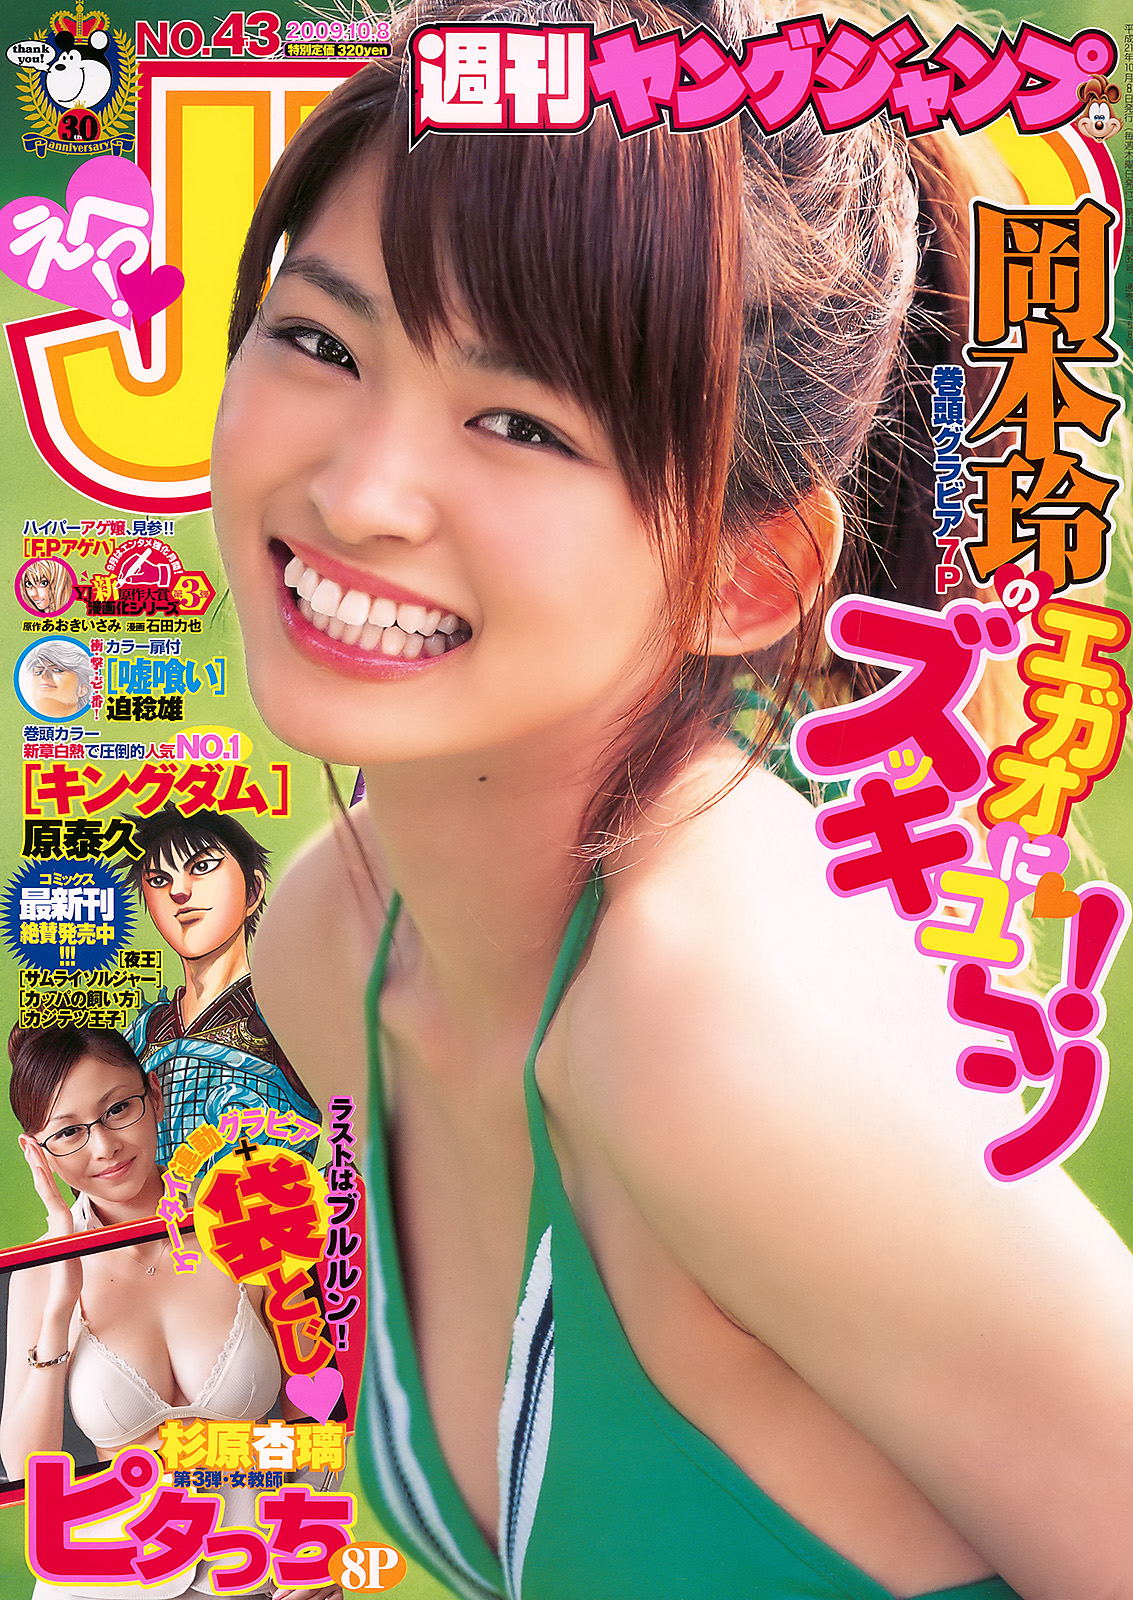 [Weekly Young JUMP] 2009 No.43 Rei Okamoto 岡本玲 [19P11MB]